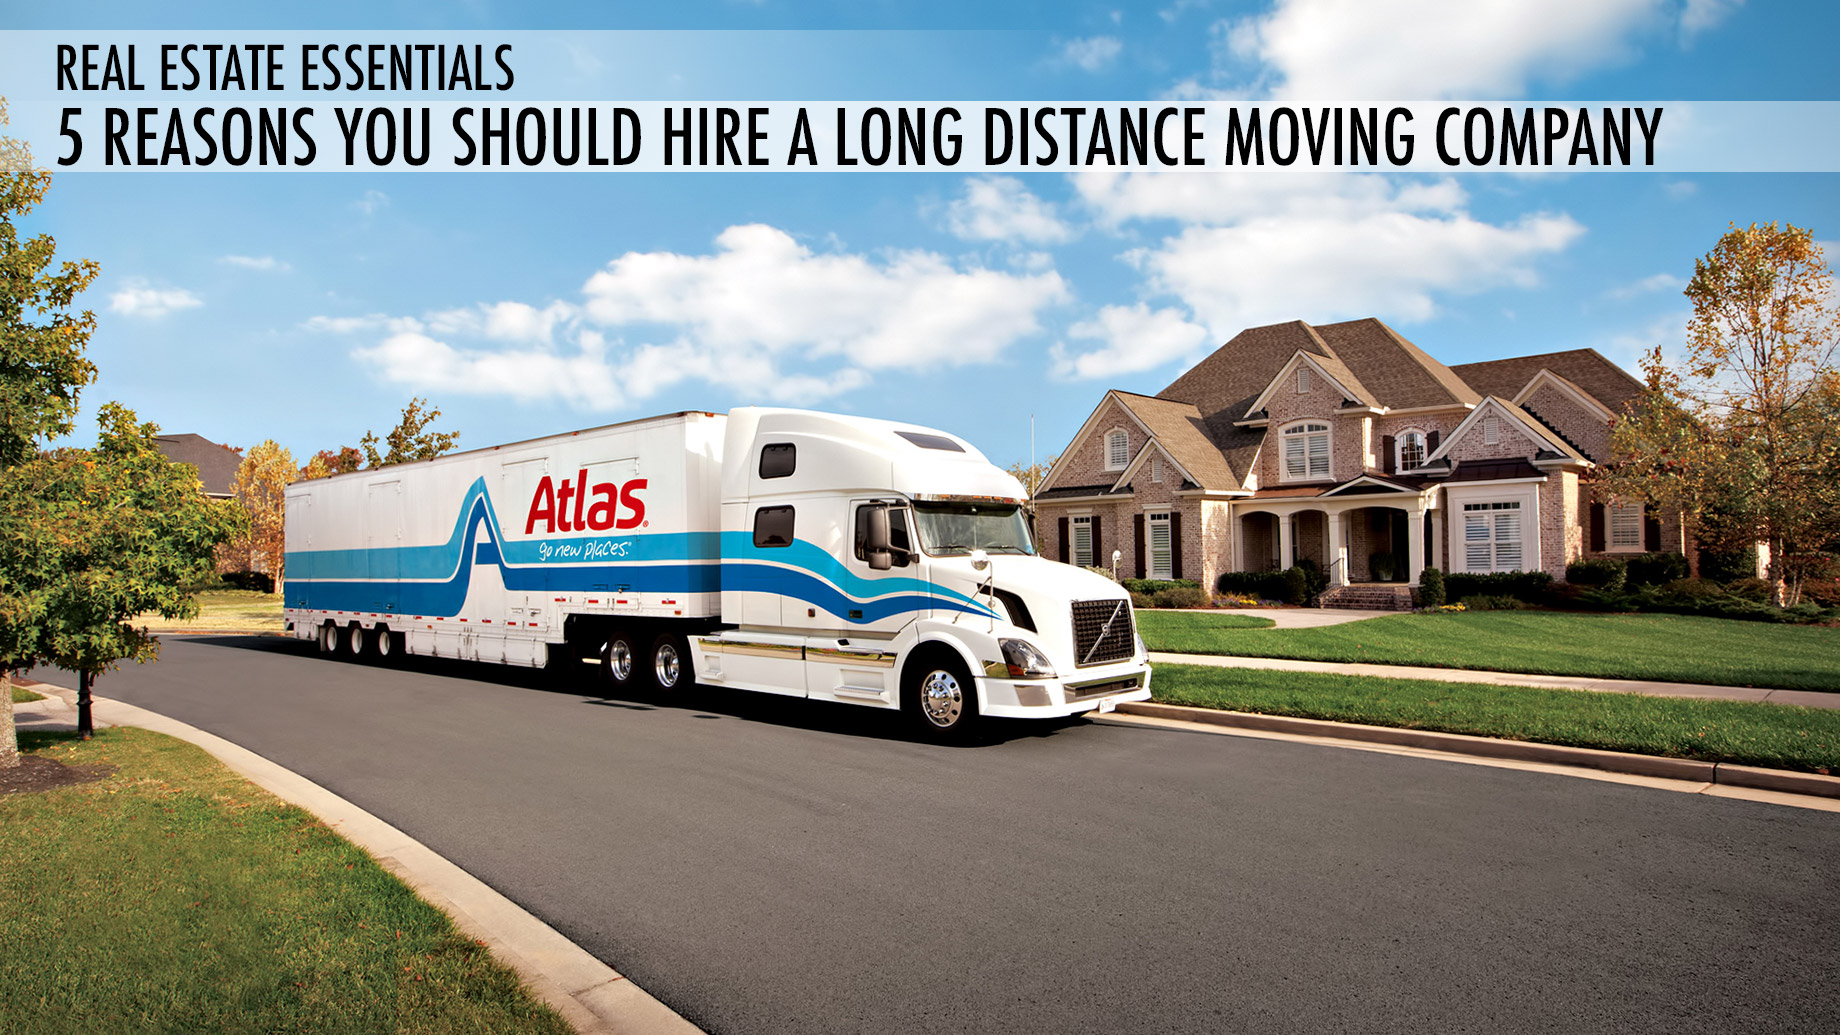 Real Estate Essentials - 5 Reasons You Should Hire a Long-Distance Moving Company